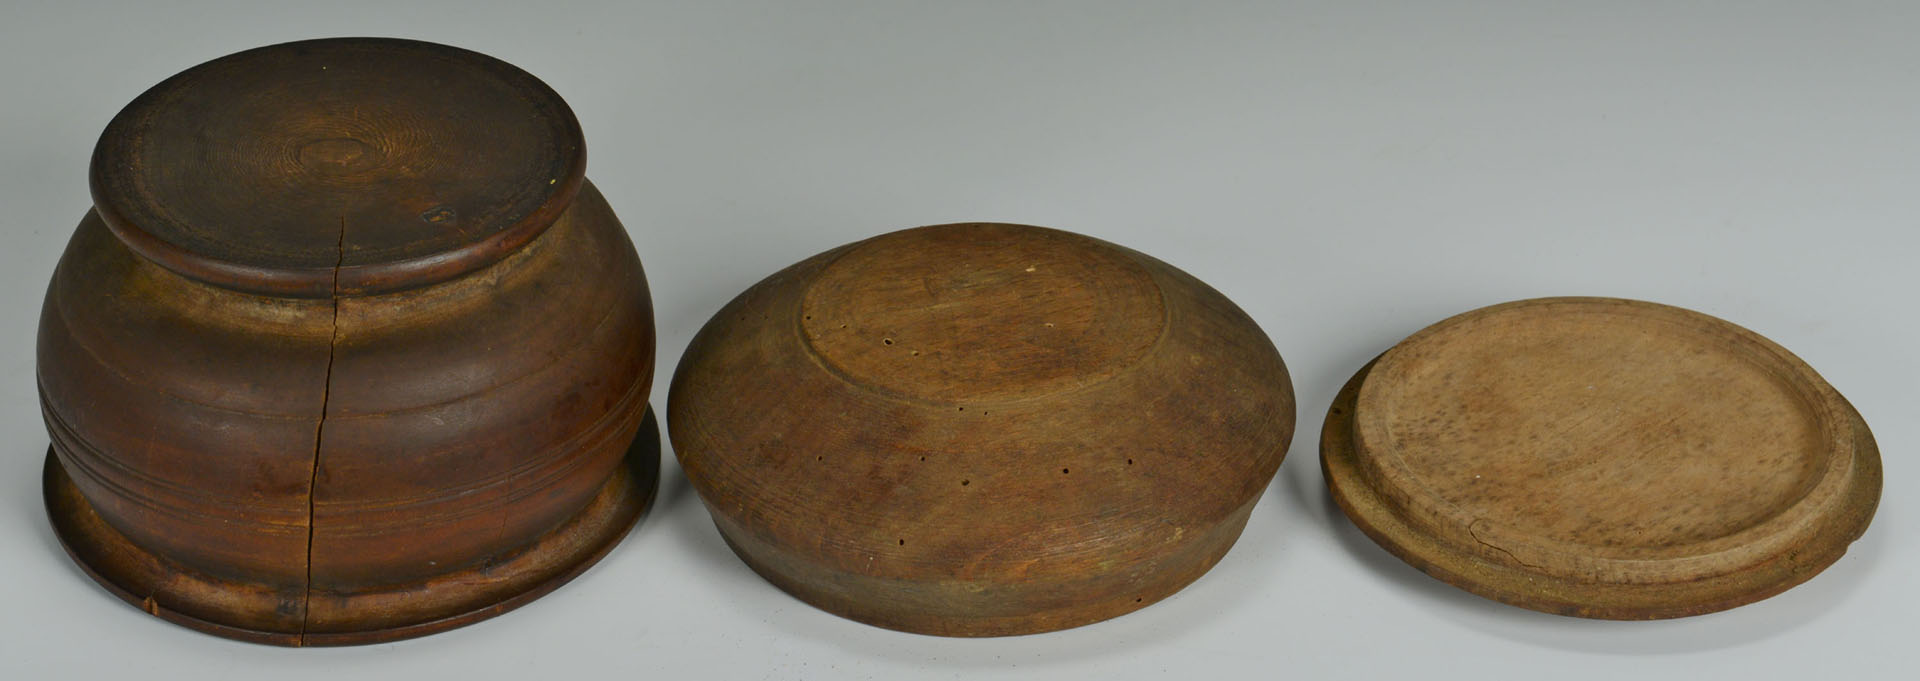 Lot 537: Grouping of Shaker Boxes, Firkins, Treenware